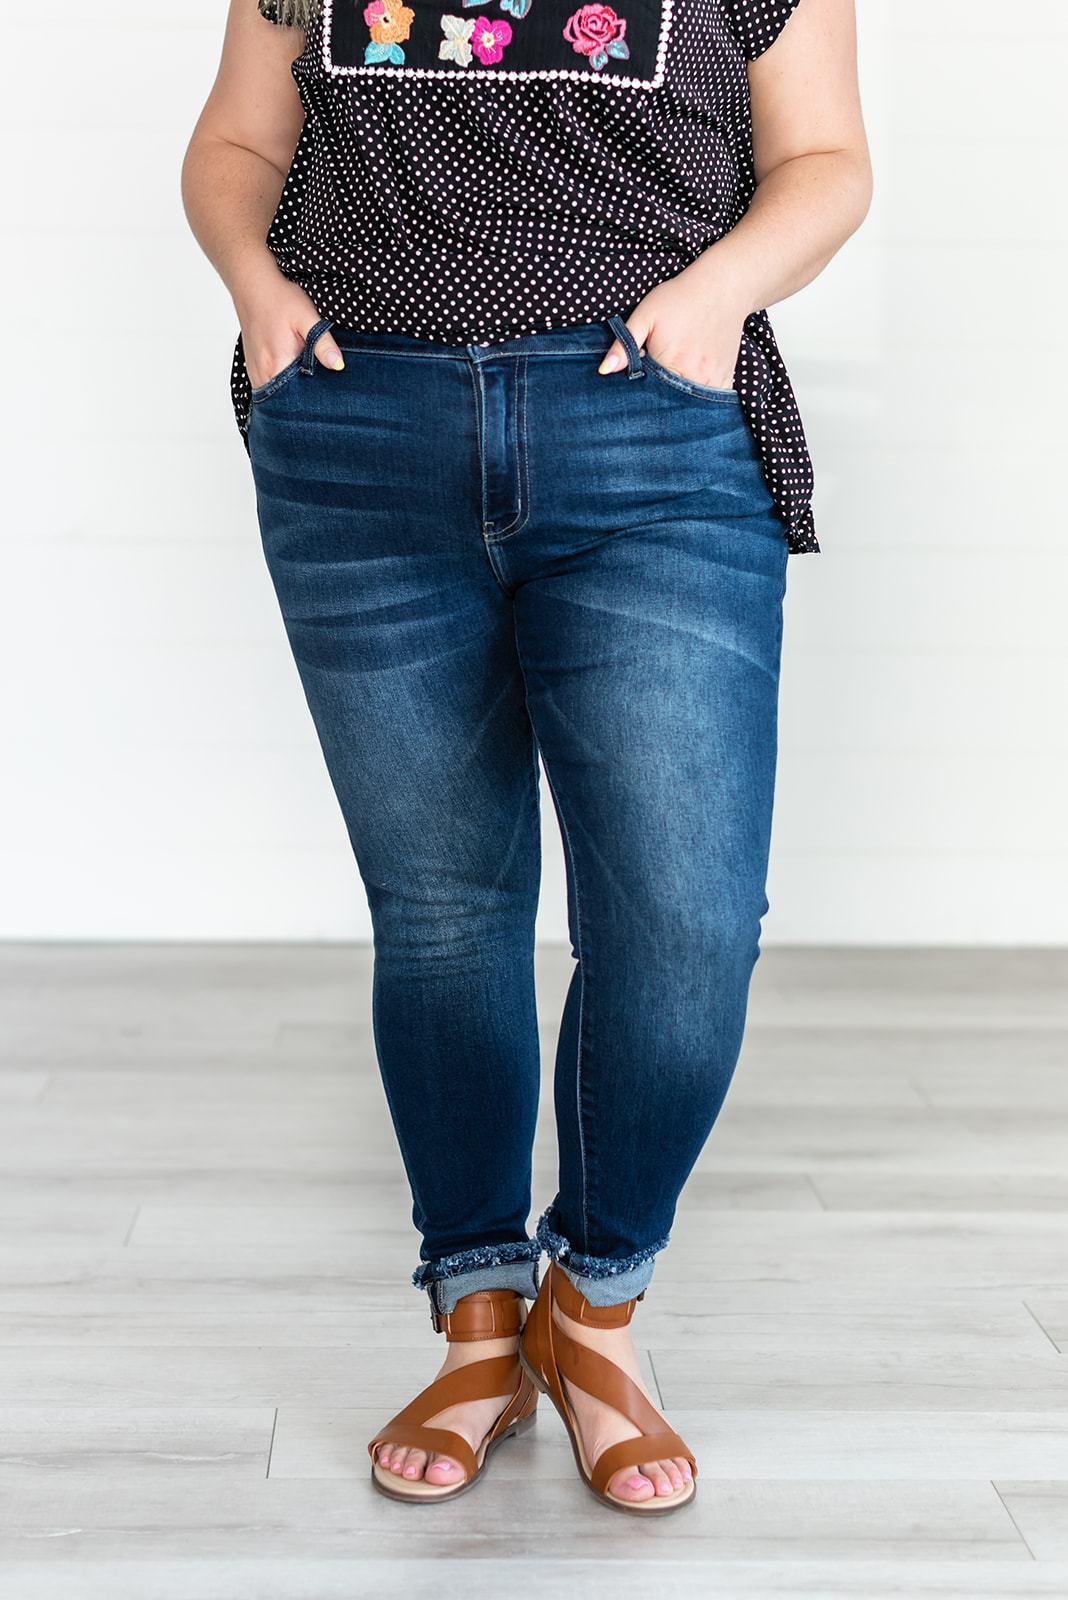 Impress You Mid Rise Skinny Jeans - Lola Cerina Boutique